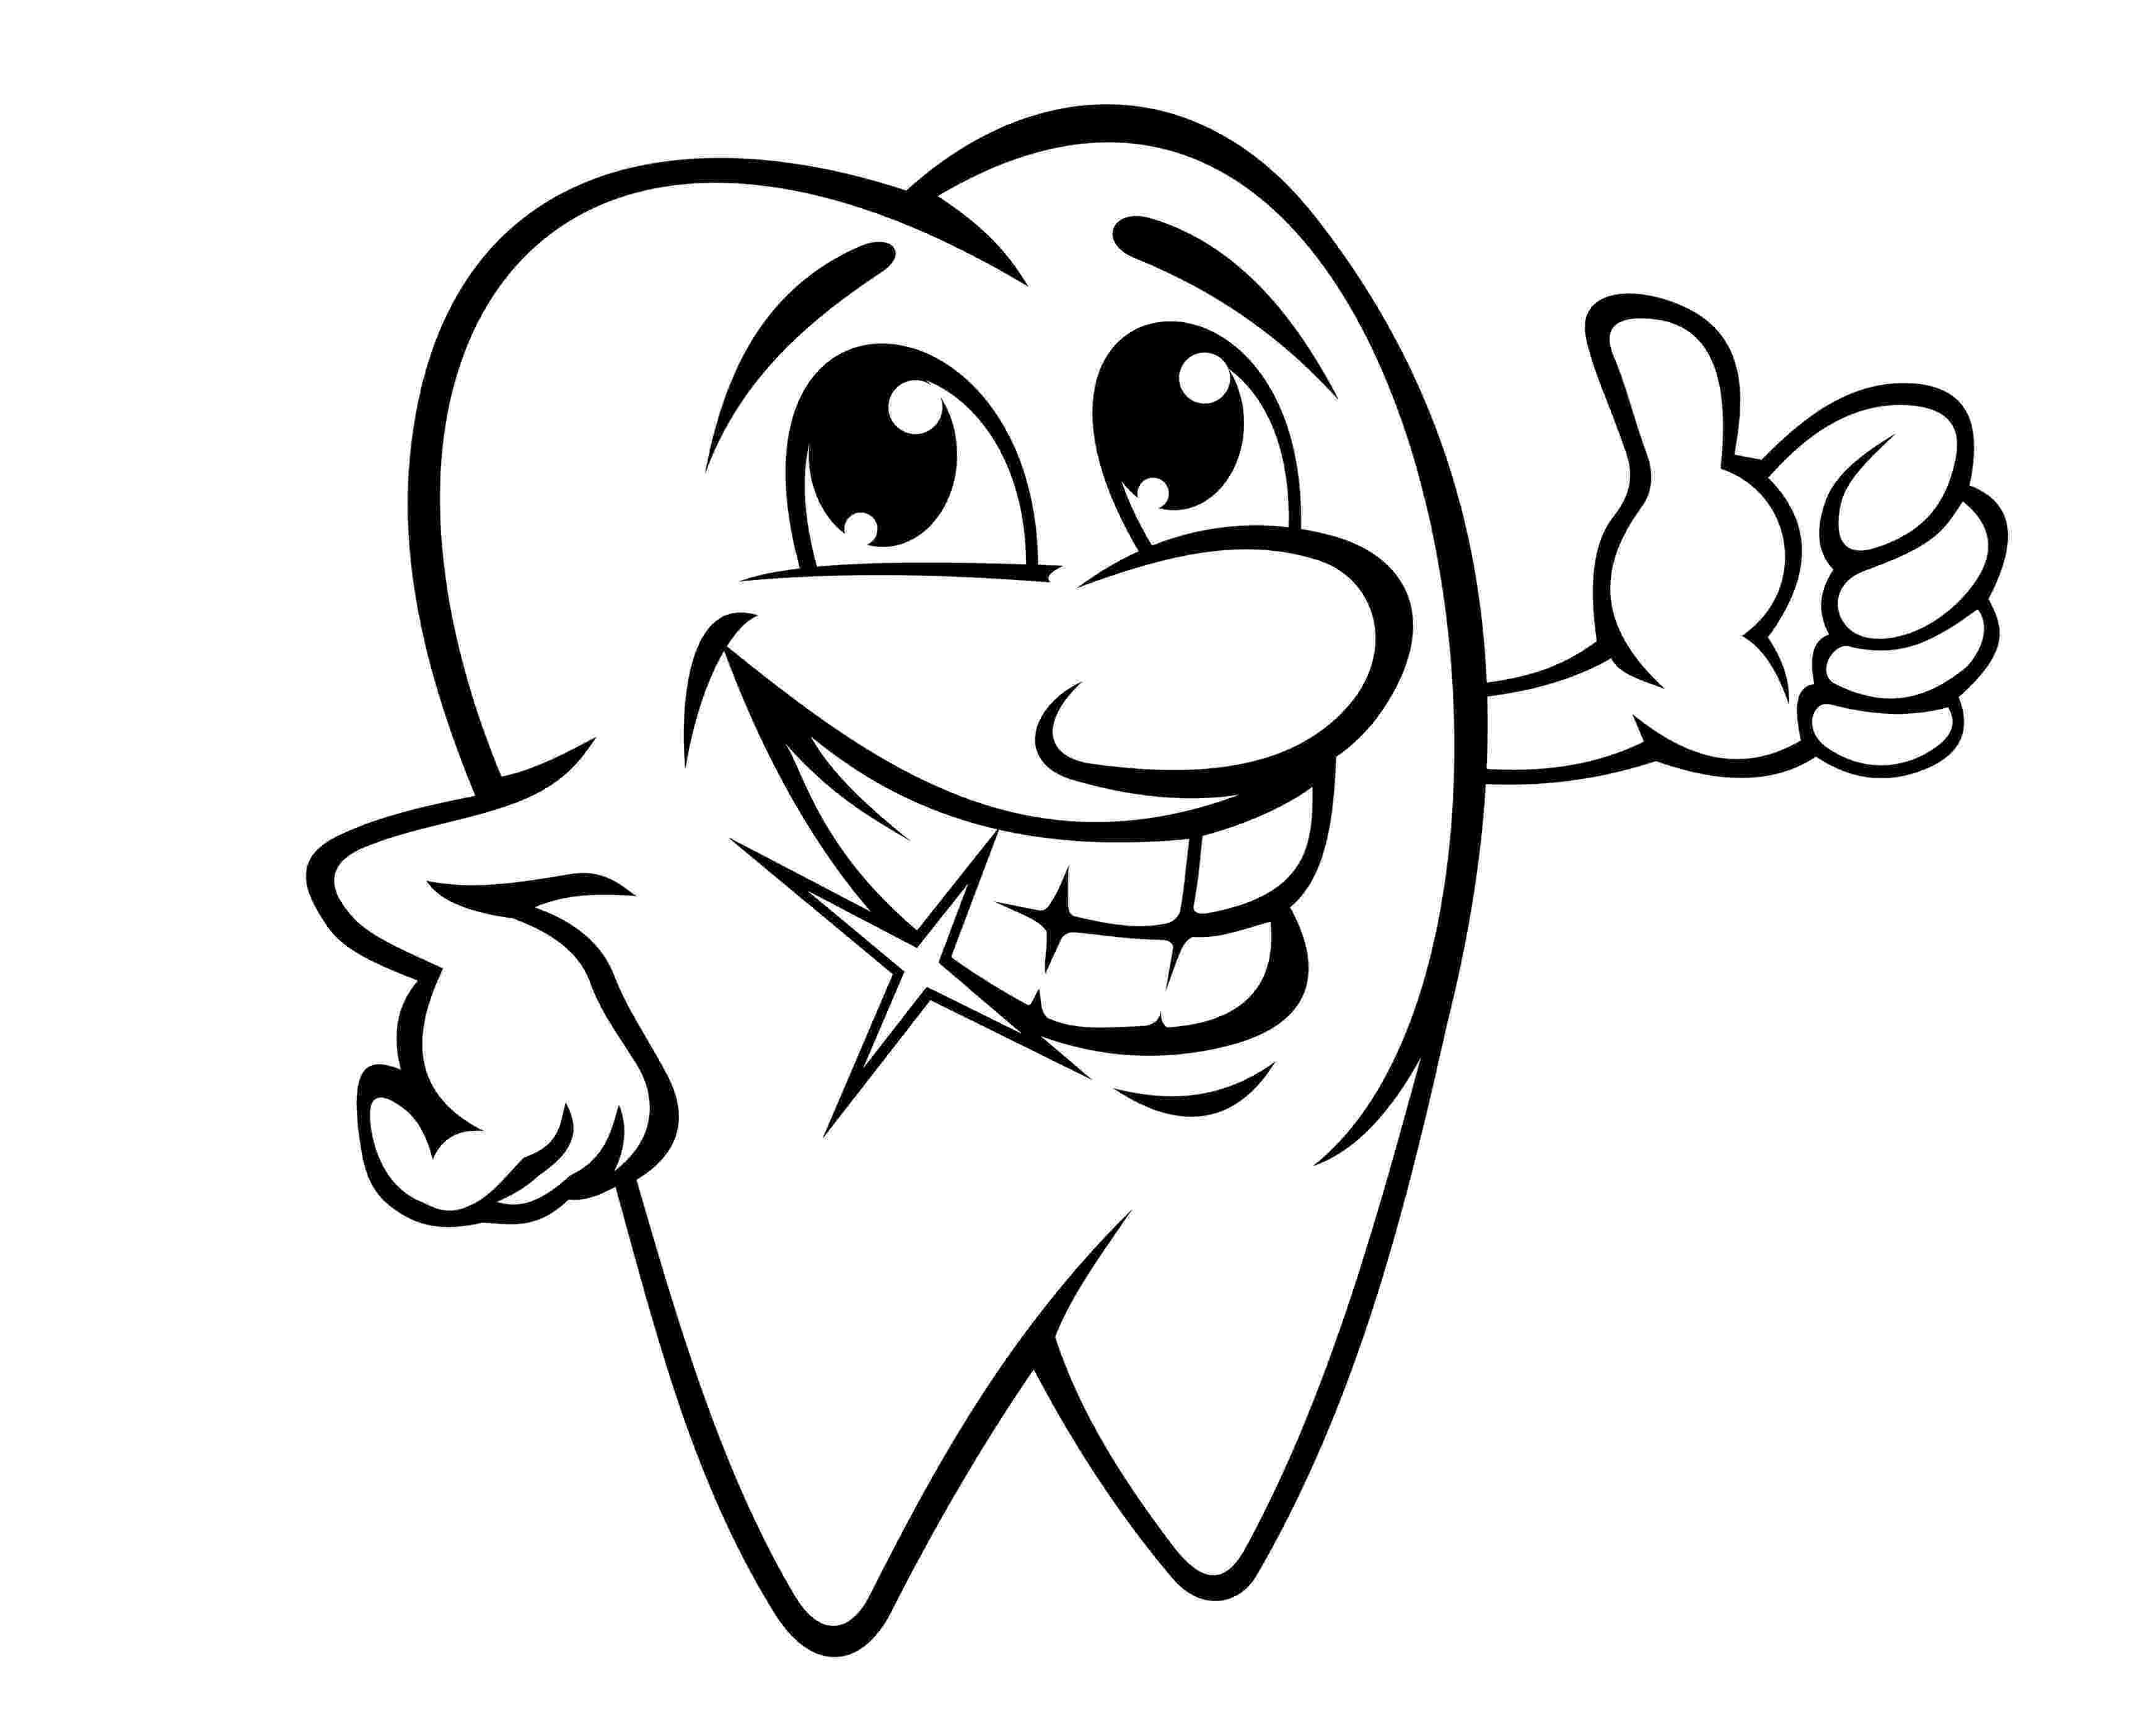 teeth coloring page 16 teeth coloring pages preschool teeth coloring pages page coloring teeth